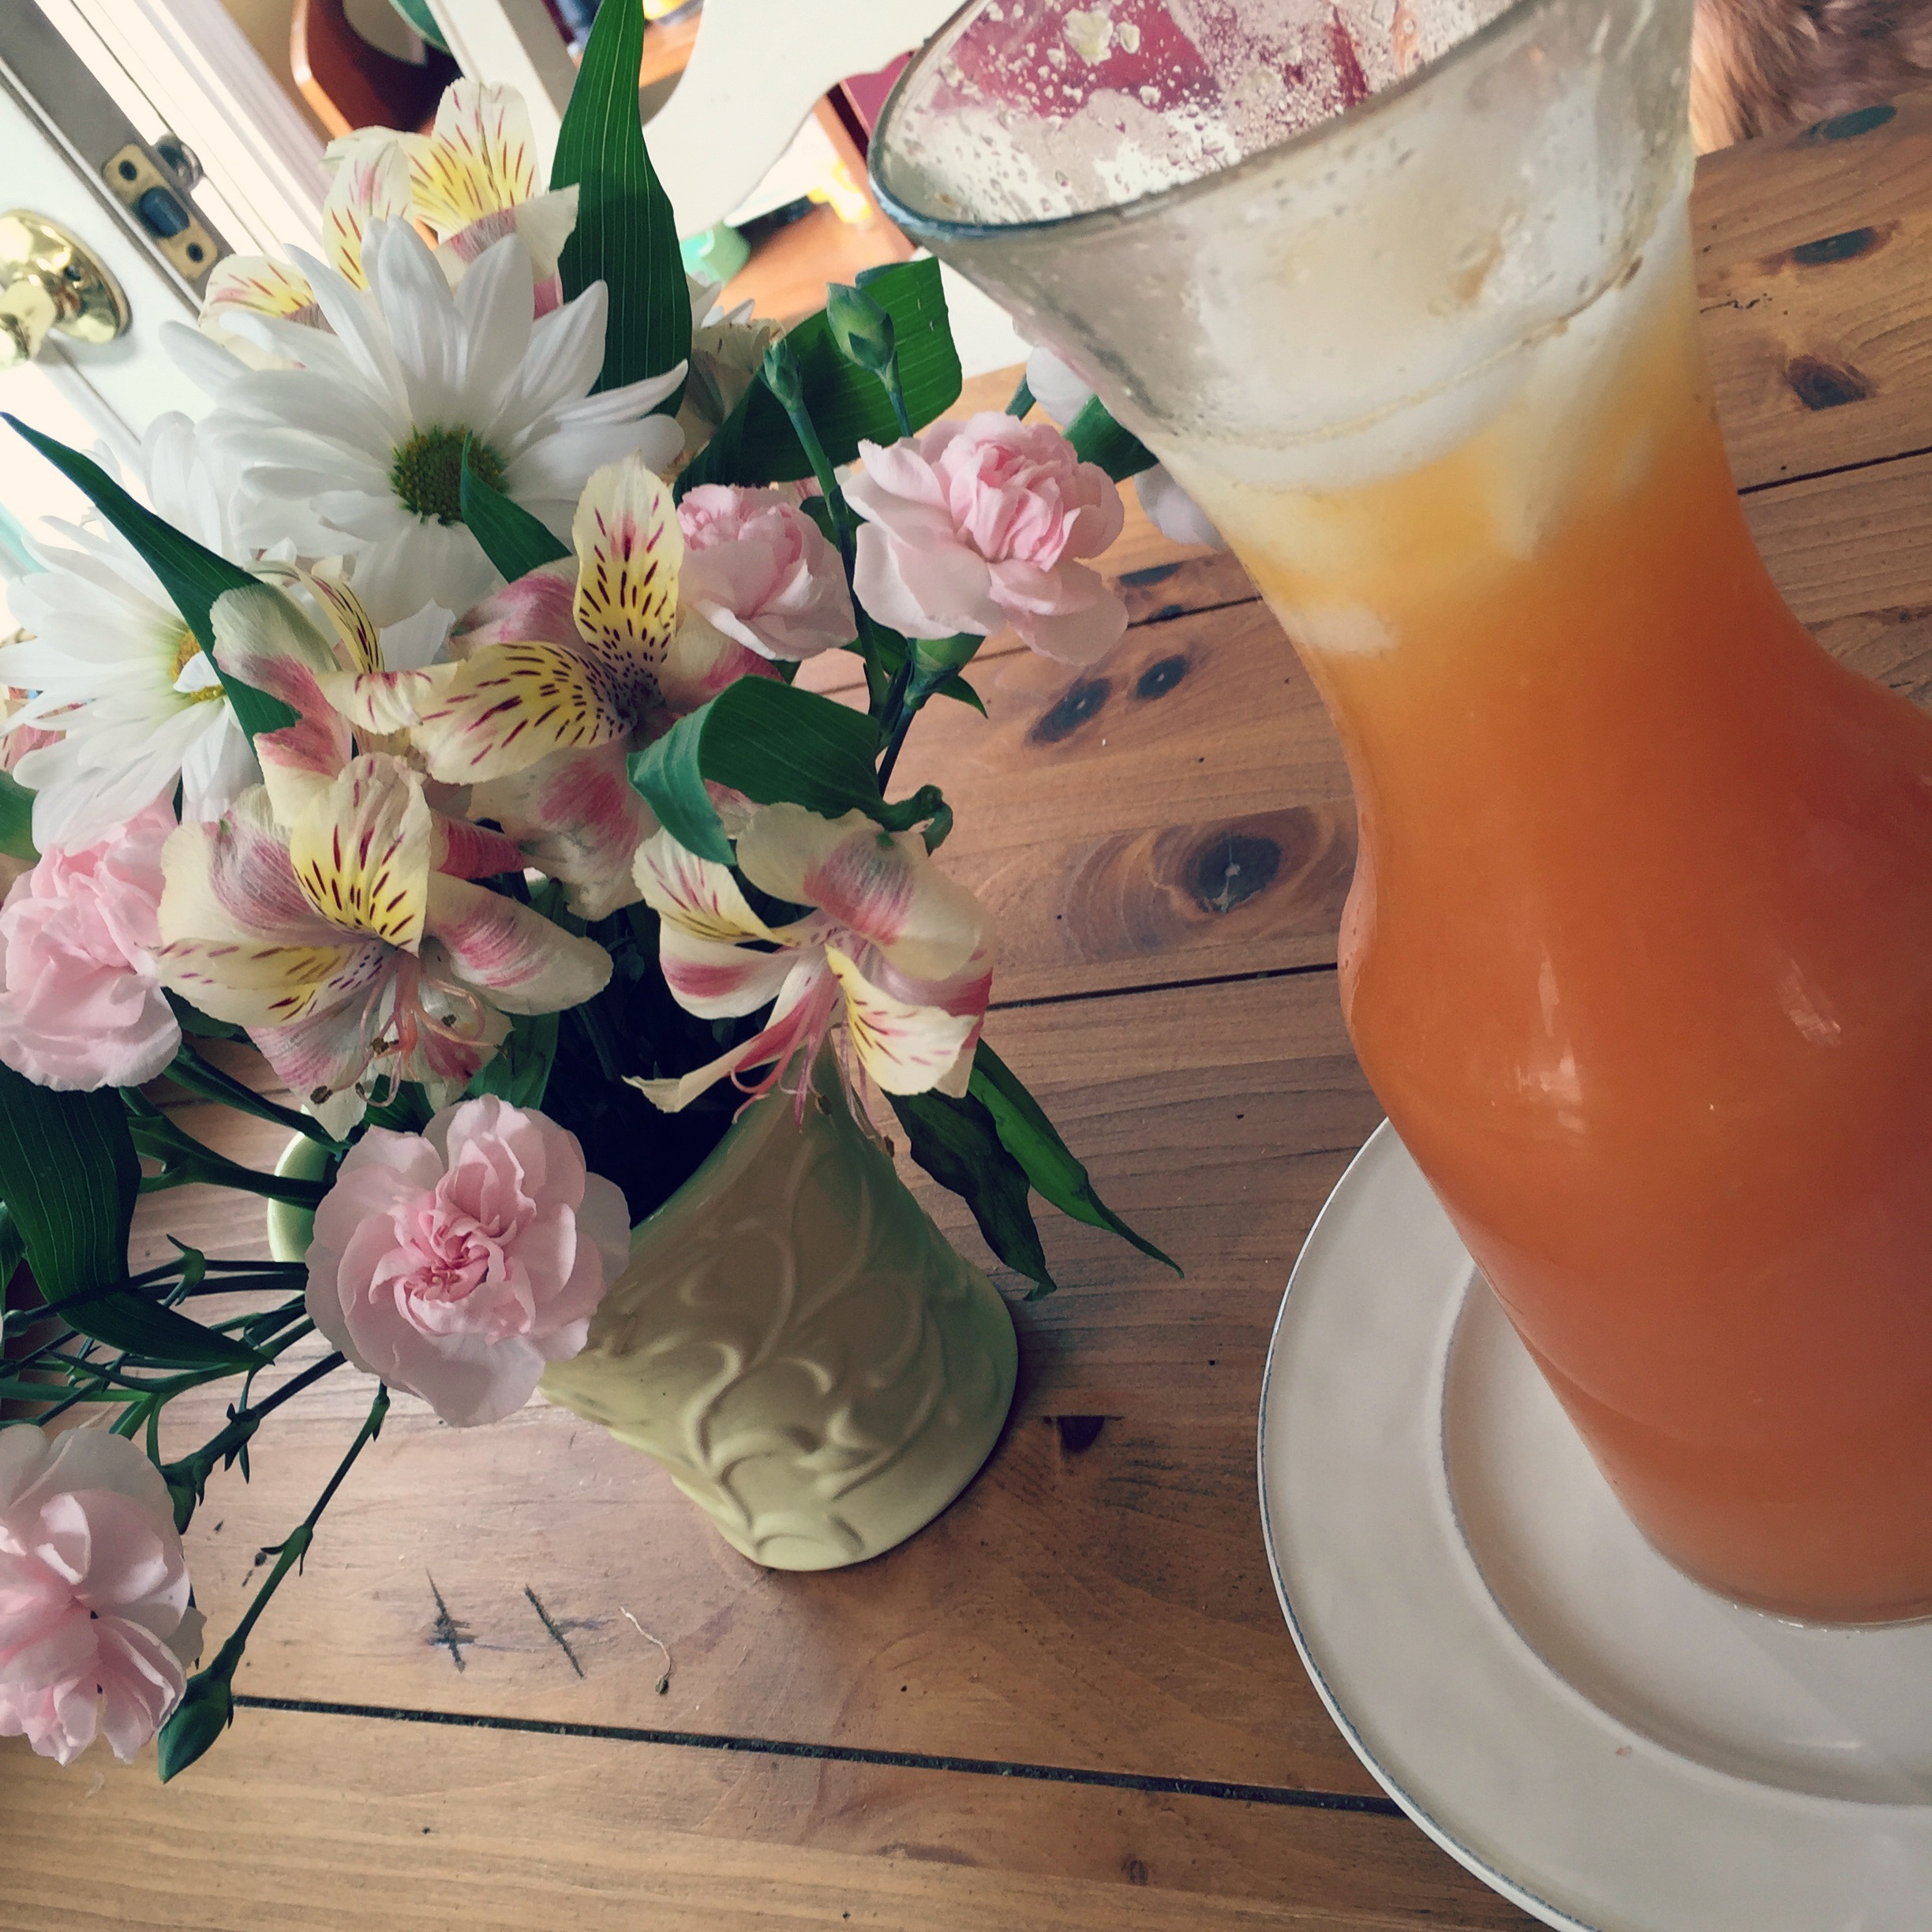 Flowers and juice